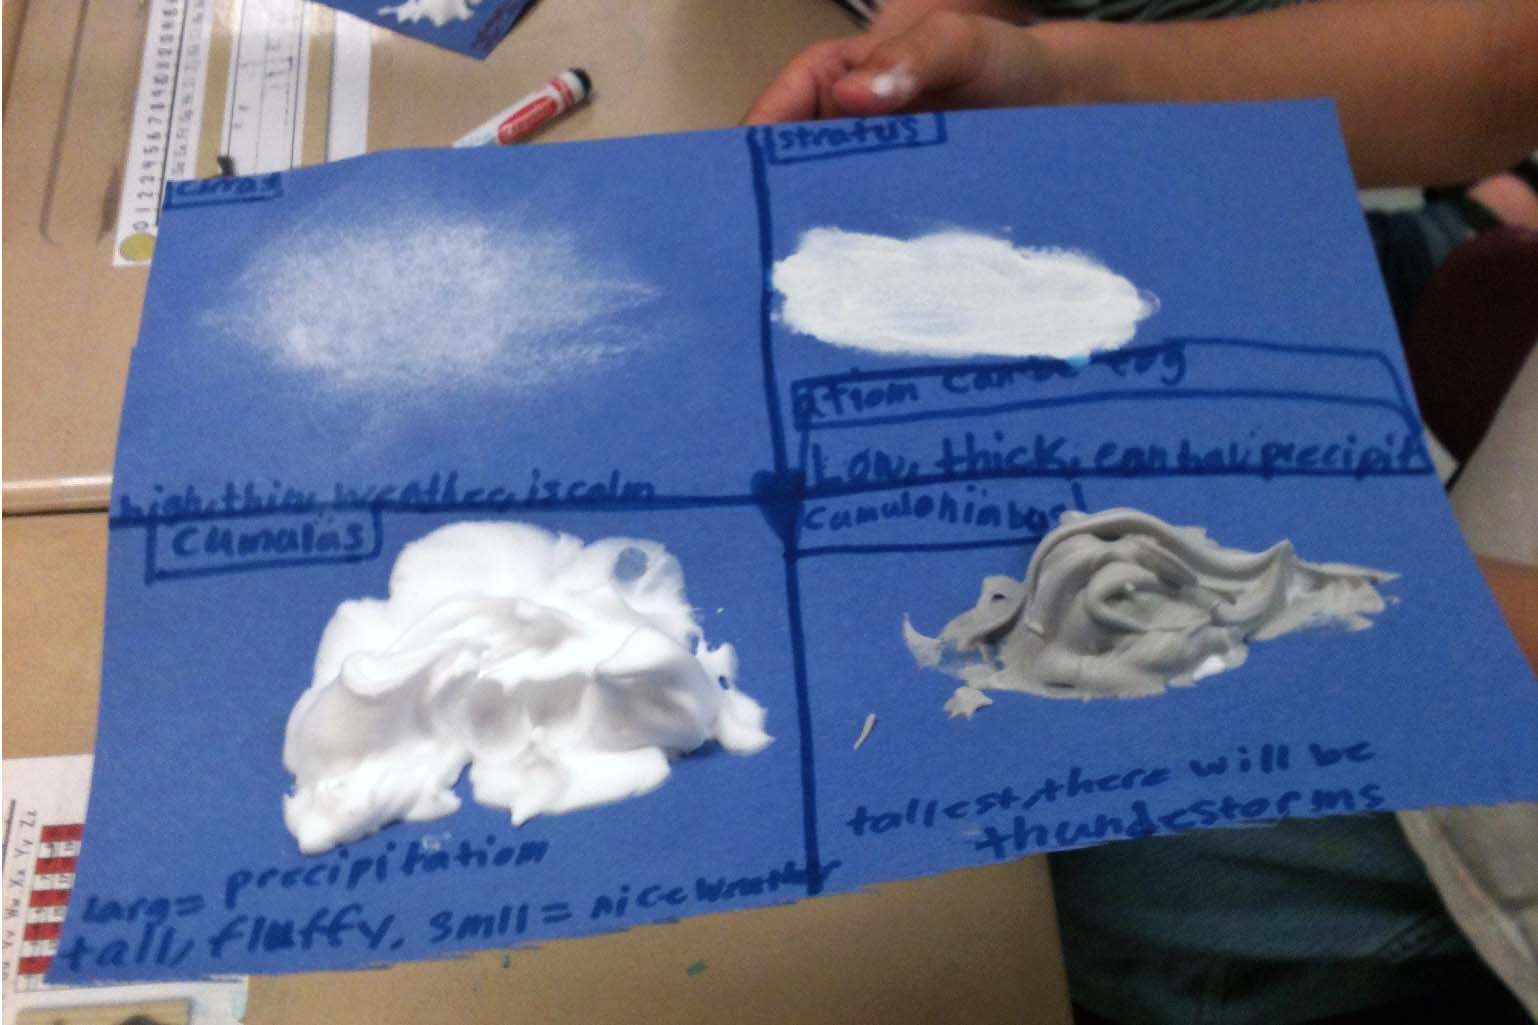 Types Of Clouds Chalk Paint Shaving Cream Glue And